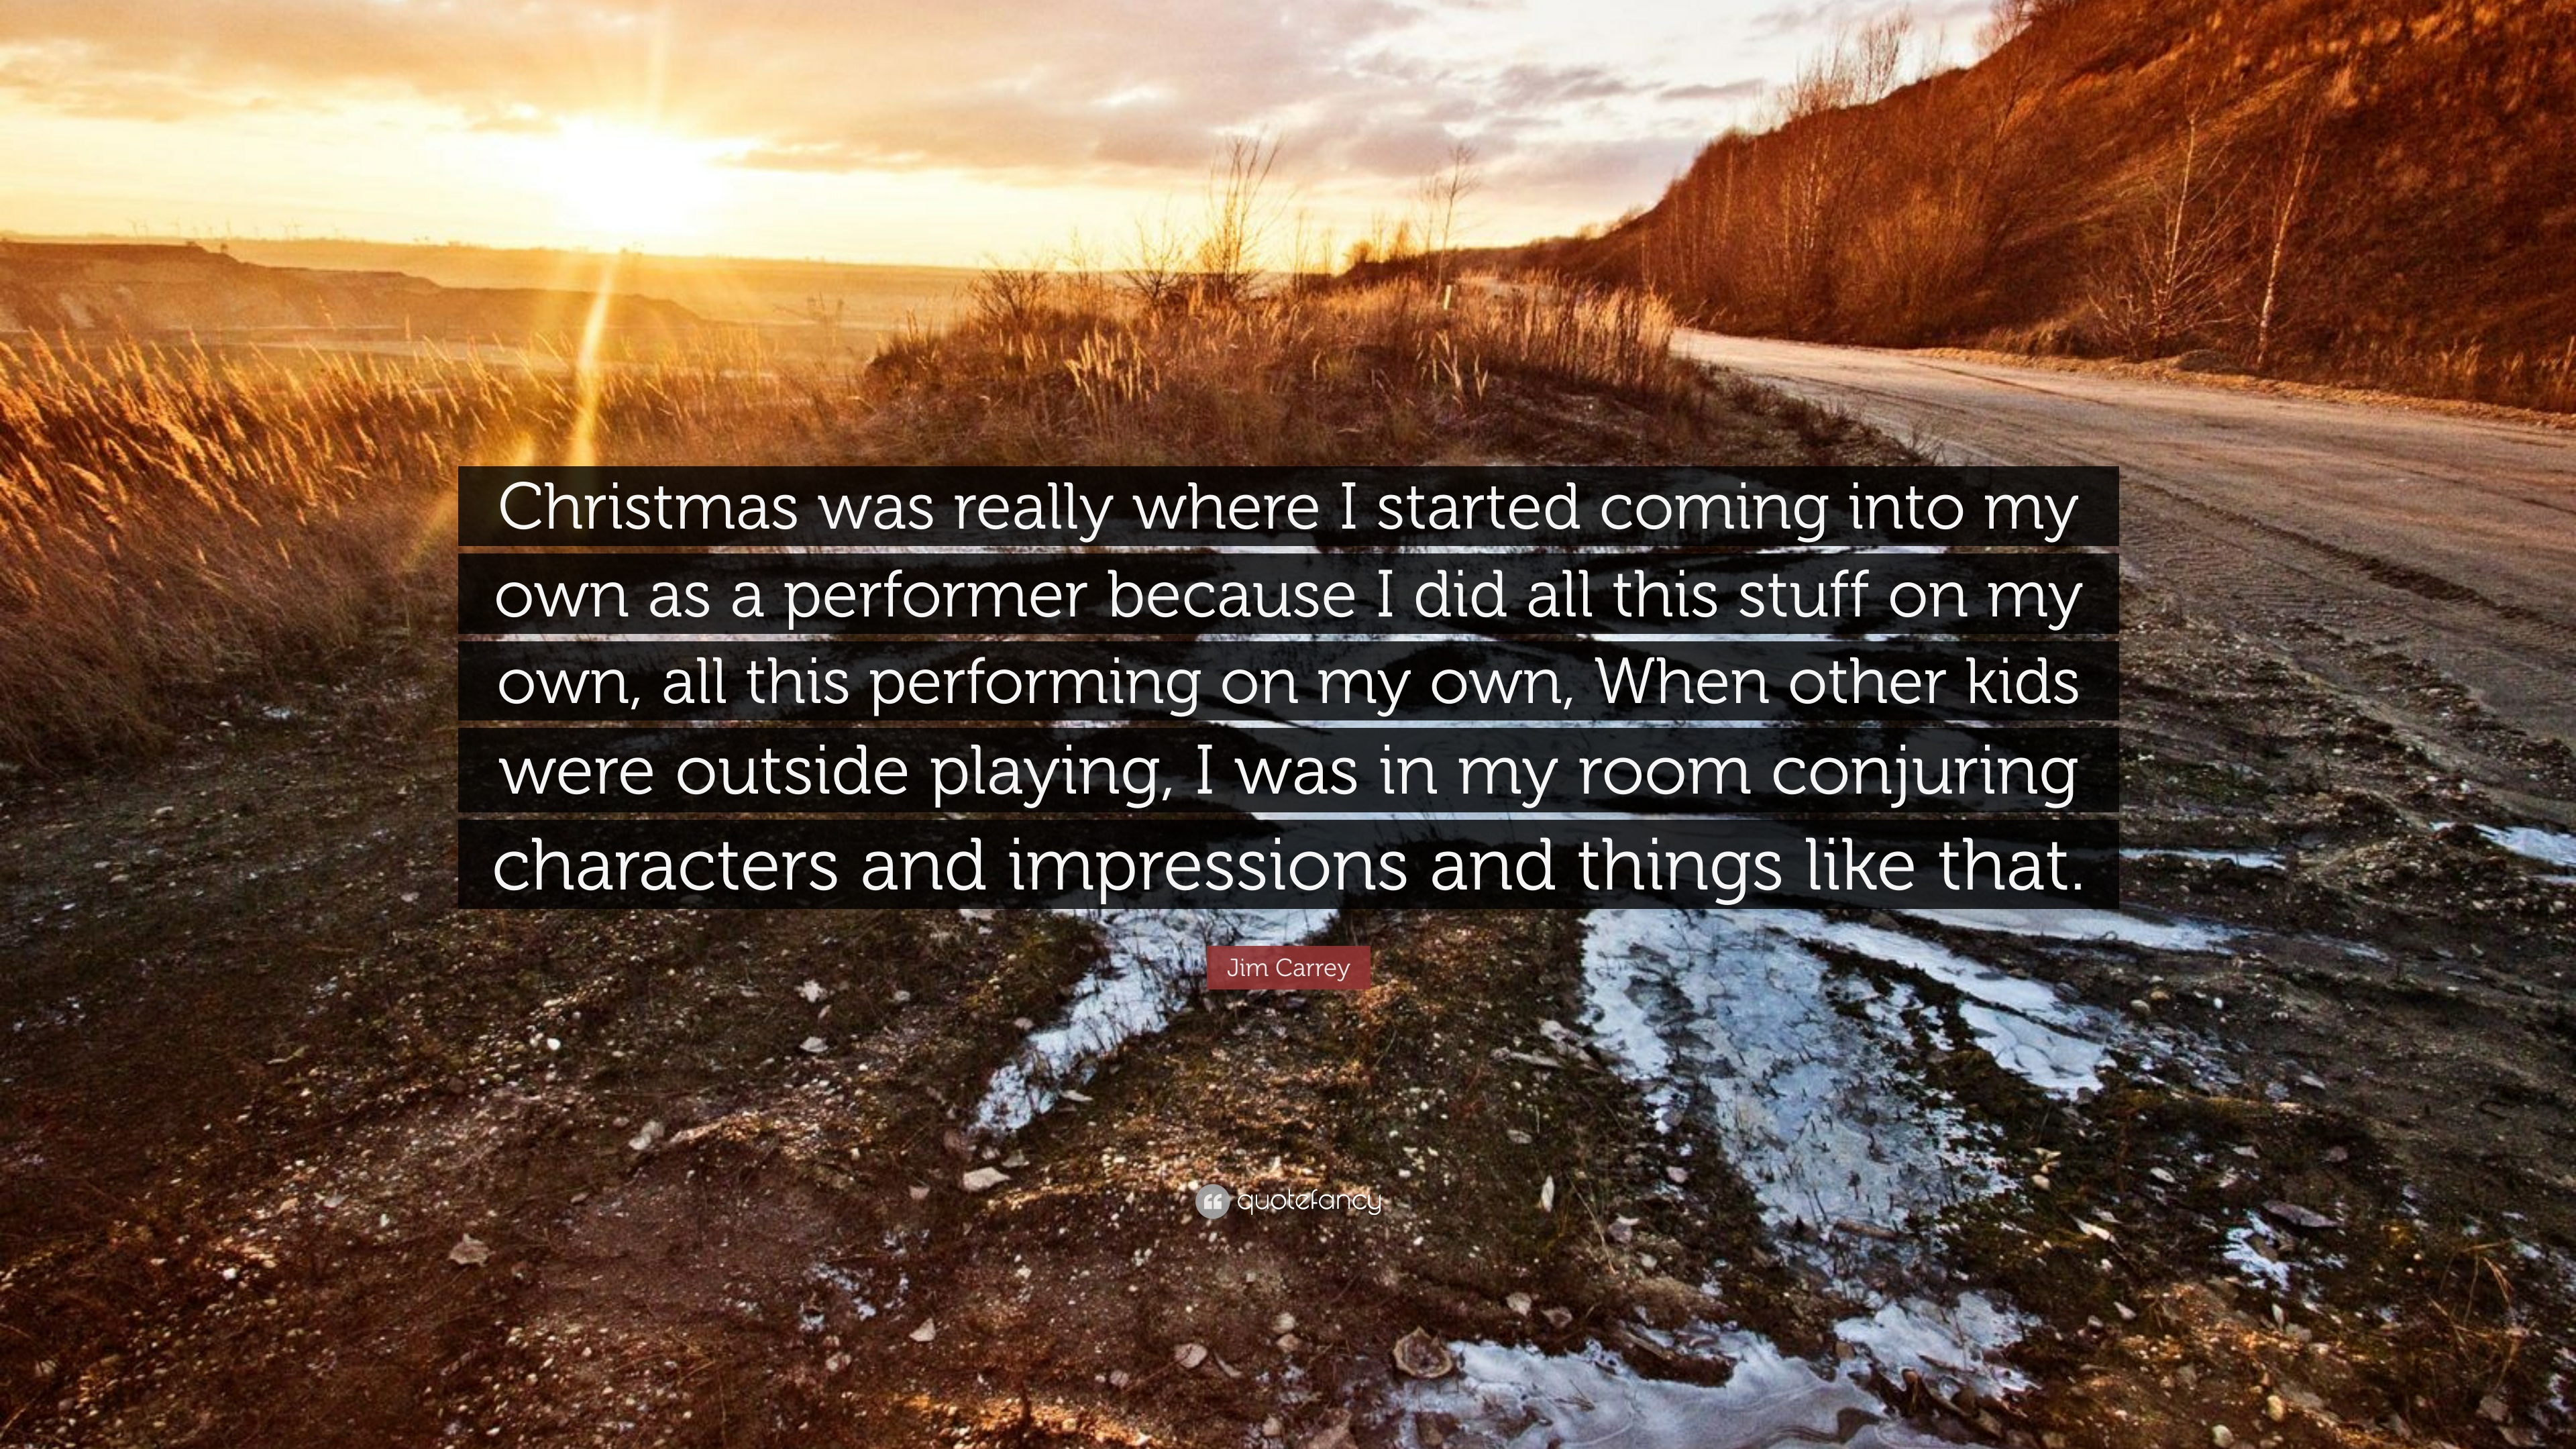 jim carrey quote christmas was really where i started coming into my own as - How Christmas Started